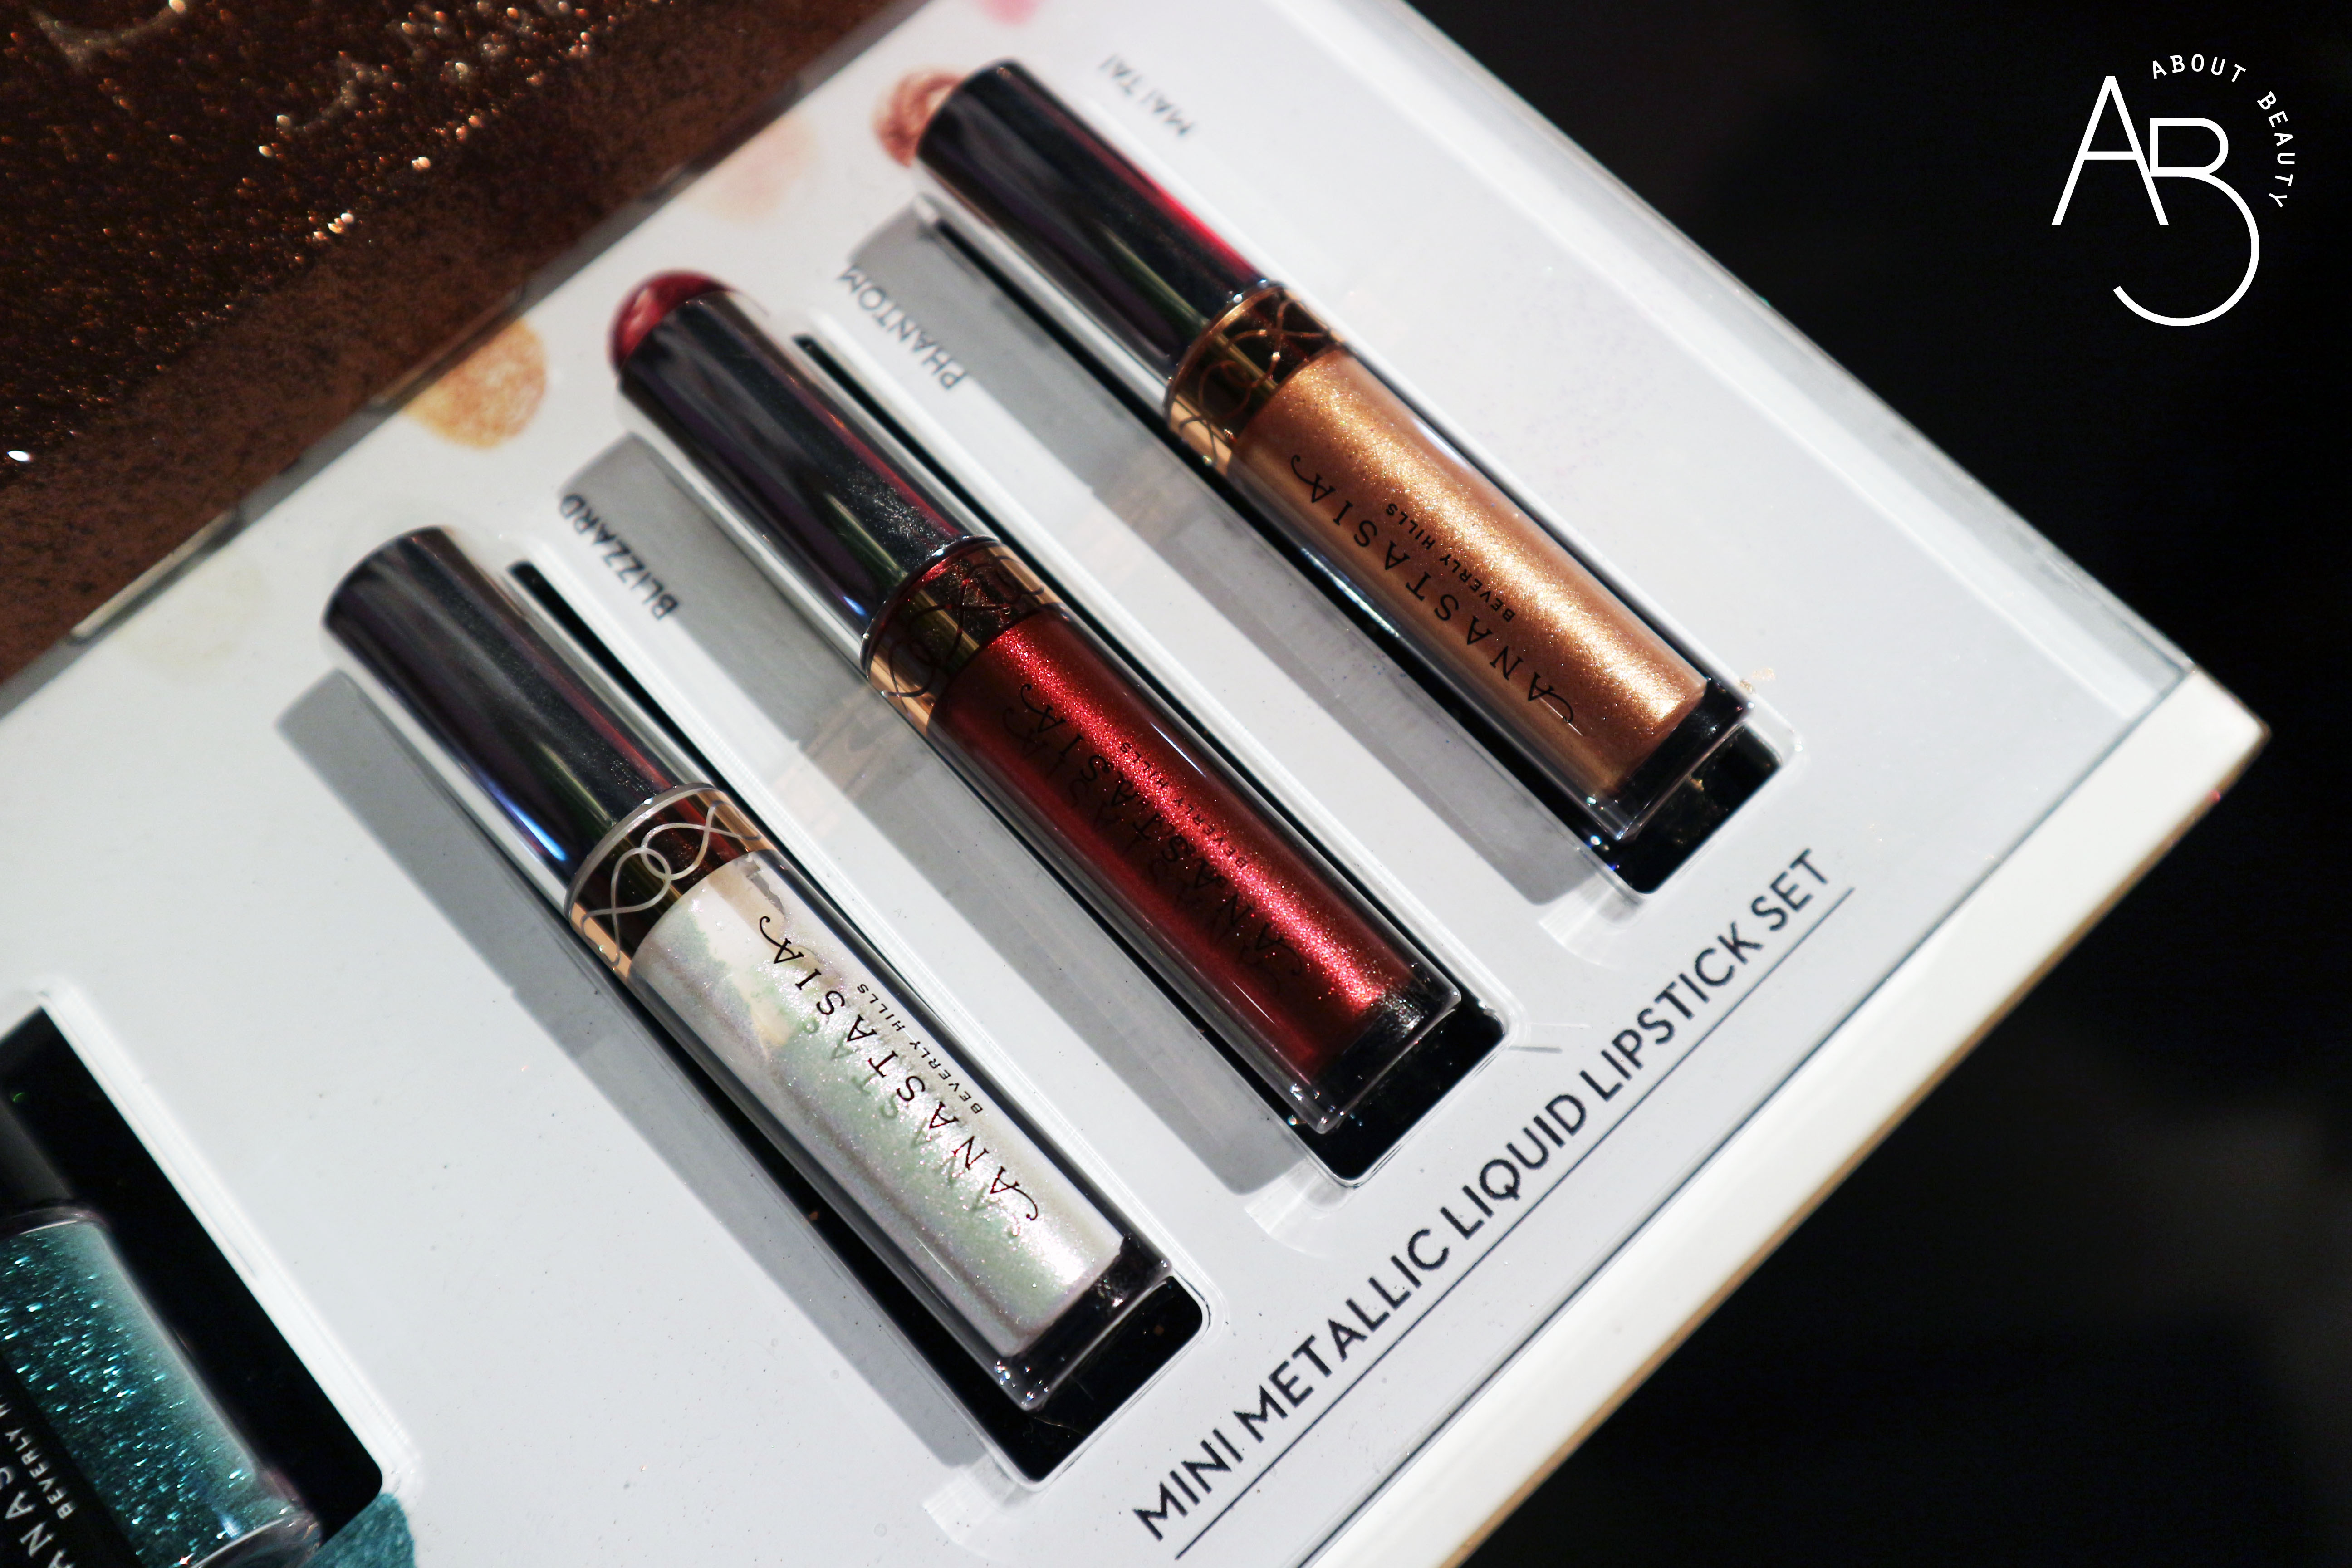 Sephora Natale 2018 Novita da non perdere - Make-up - Anastasia Beverly Hills Mini Metallic Liquid Lipstick Set - Review, recensione, swatch, info, prezzo, dove acquistare, data di uscita